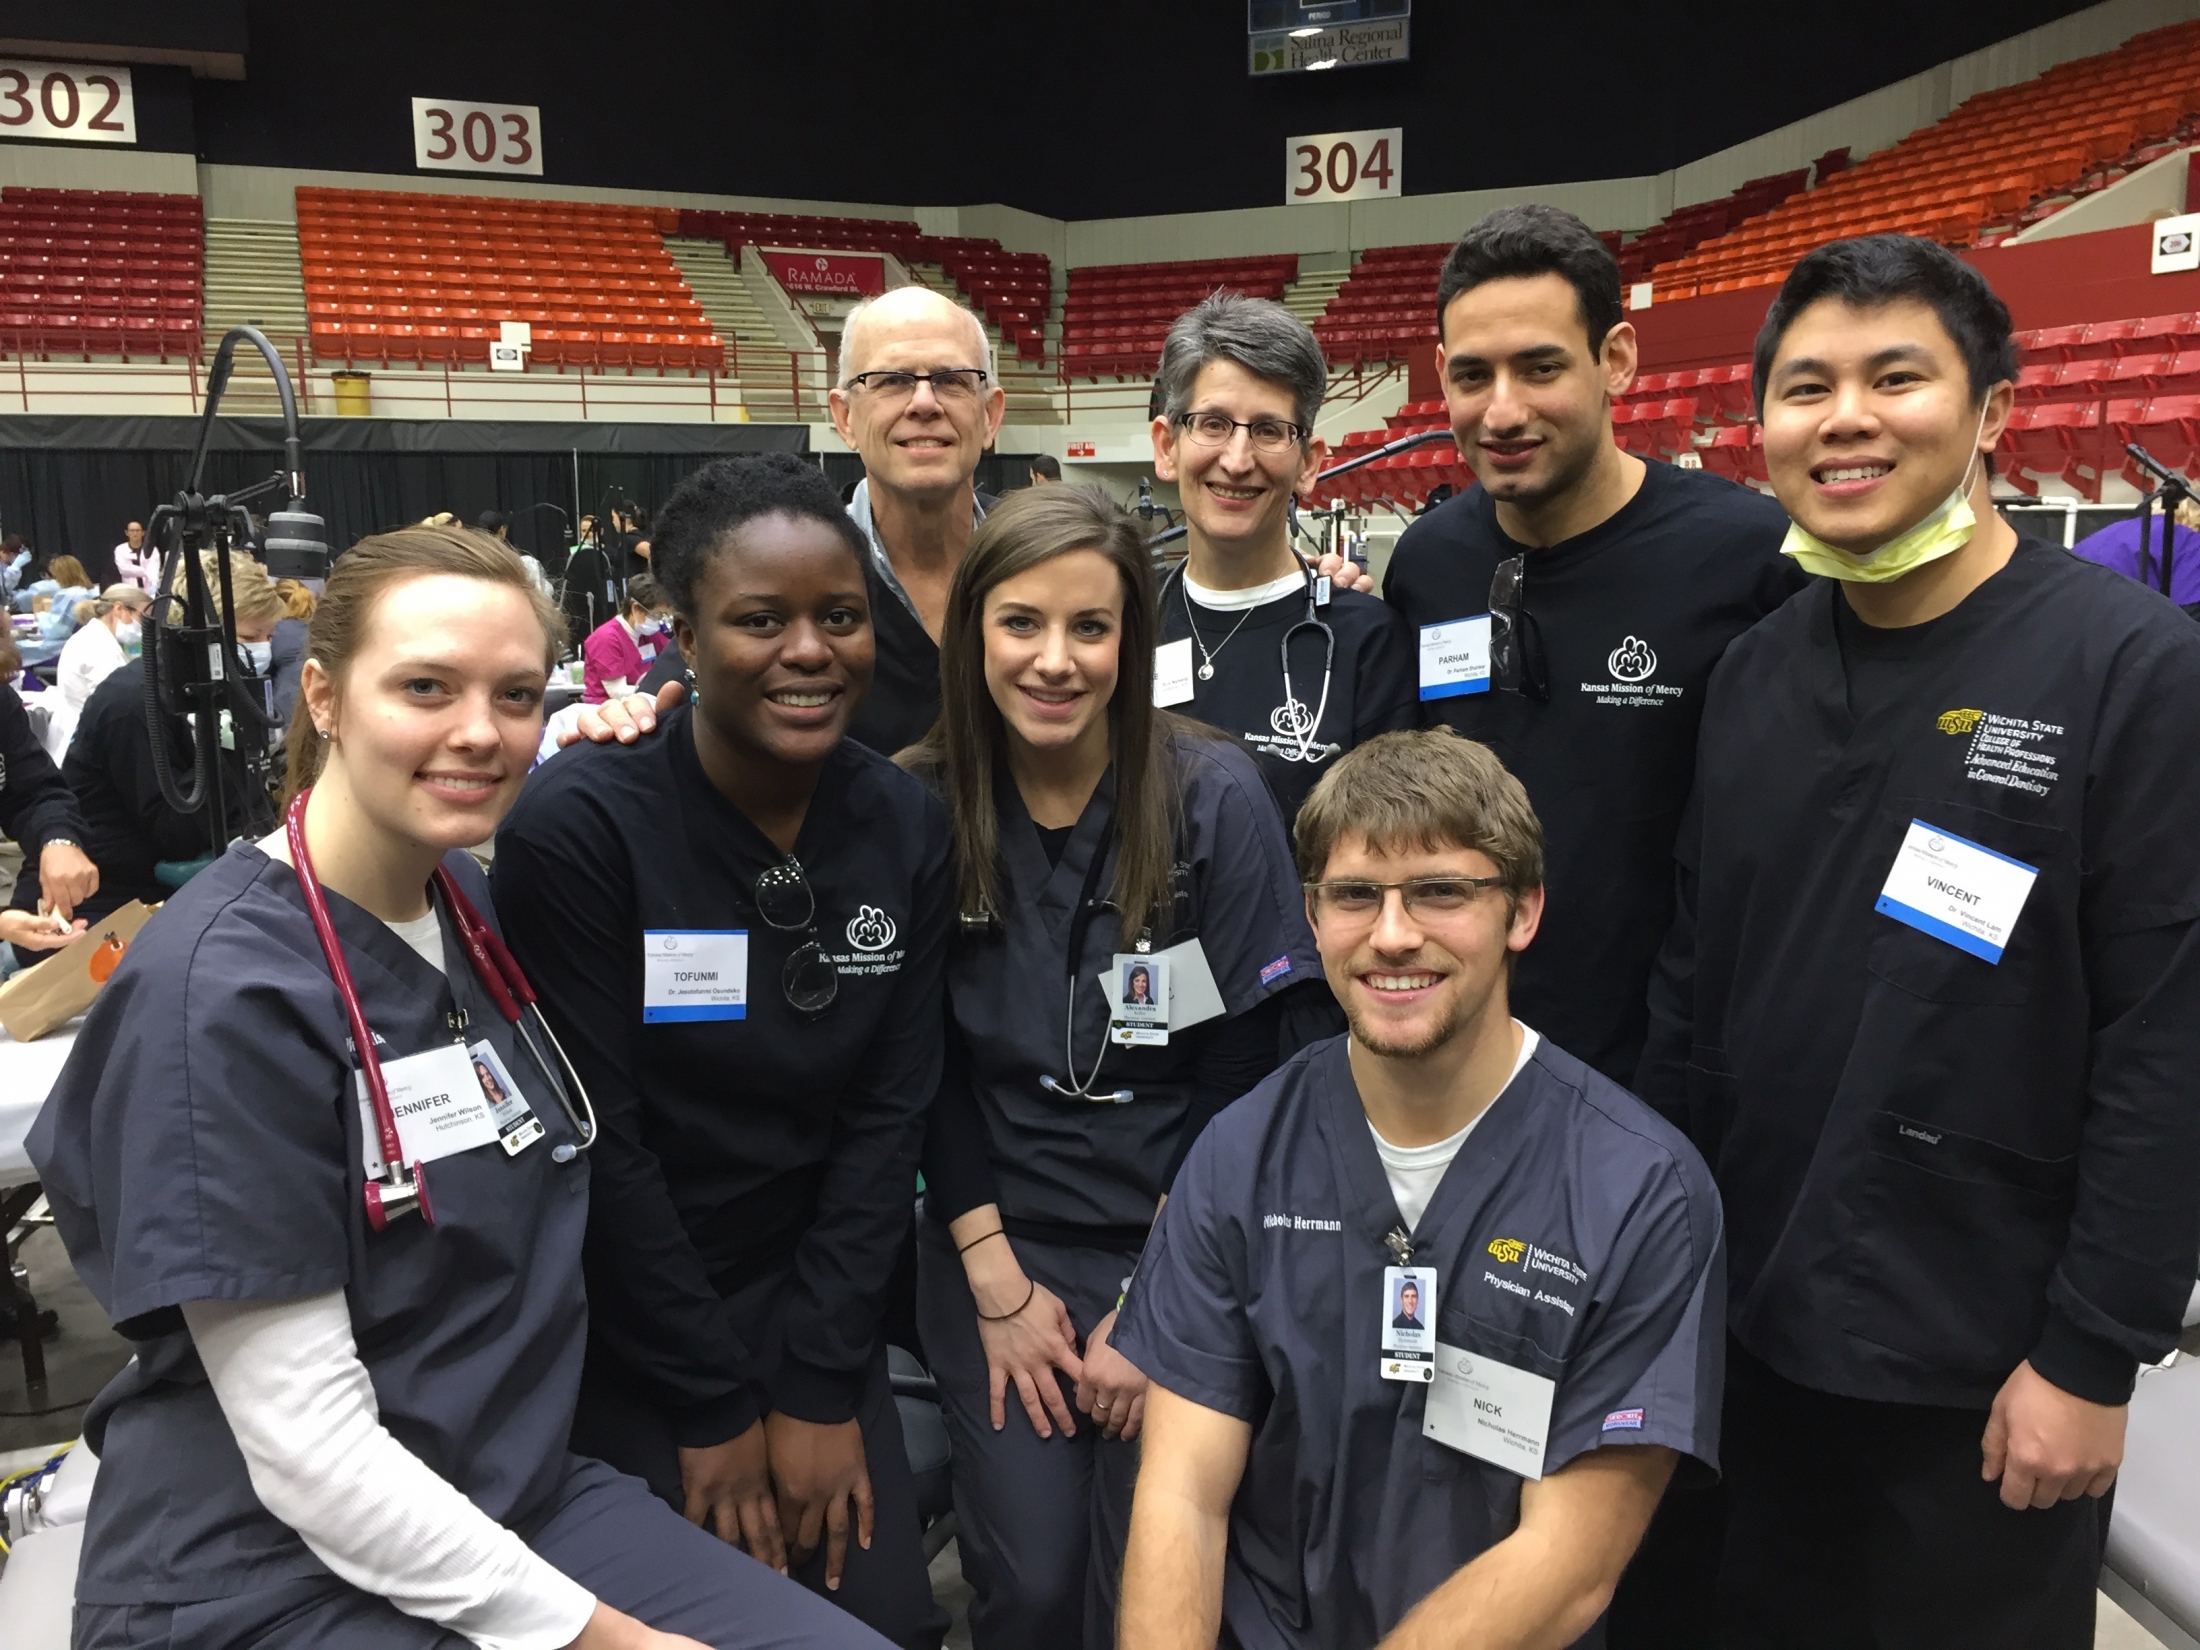 Dental Hygiene and Physician Assistant students are posing for a group picture during the technology fair at Koch Arena. Faculty advisors are also in the picture. All are wearing clinic scrubs.